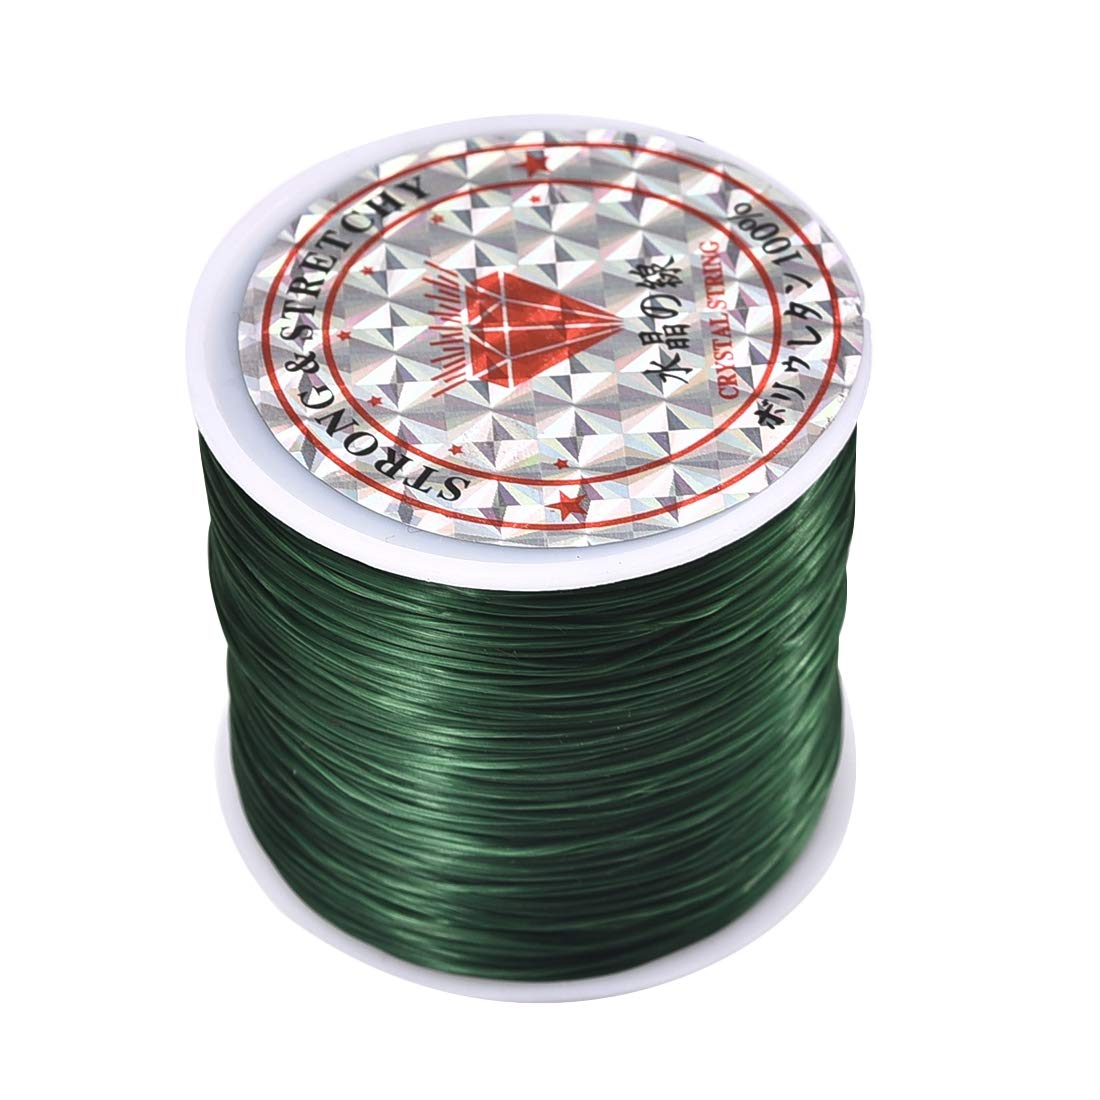 1.0mm approx 10m A roll of clear white elastic cord// wire 0.8mm